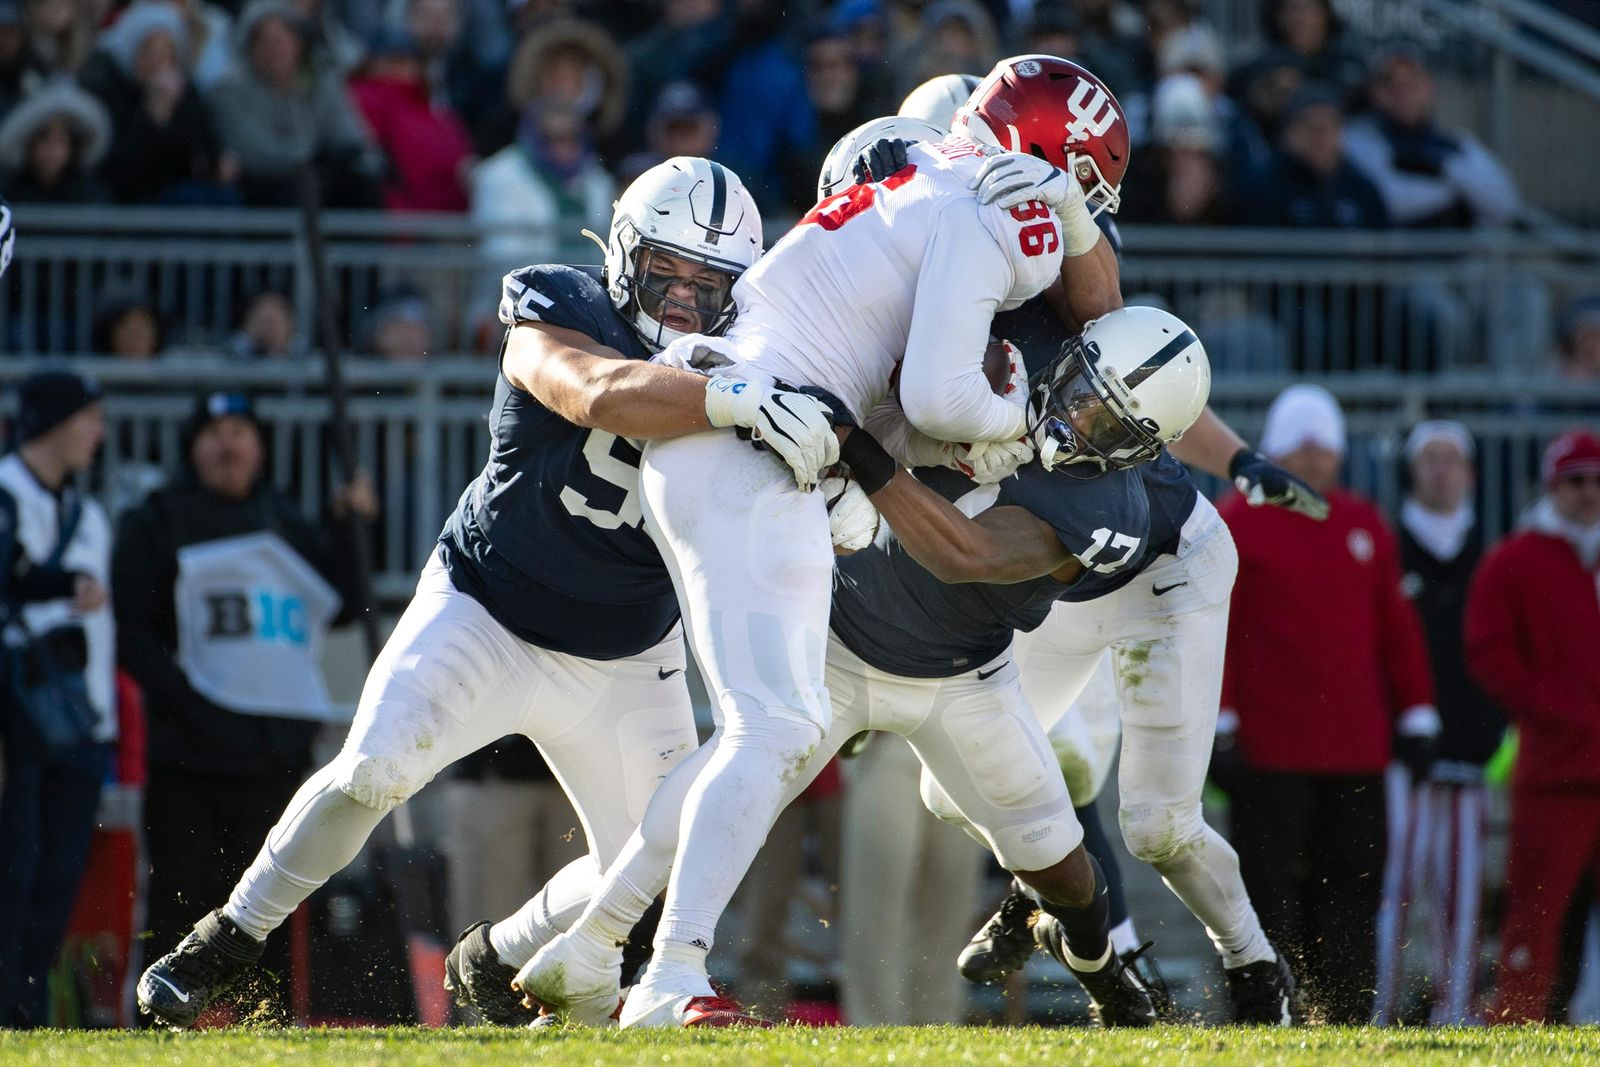 Penn State defenders Antonio Shelton (55) and Garrett Taylor (17) stop Indiana tight end Peyton Hendershot (86) on a fake punt in the third quarter of an NCAA college football game in State College, Pa., on Saturday, Nov.16, 2019. Penn State defeated 34-27. (AP Photo/Barry Reeger)